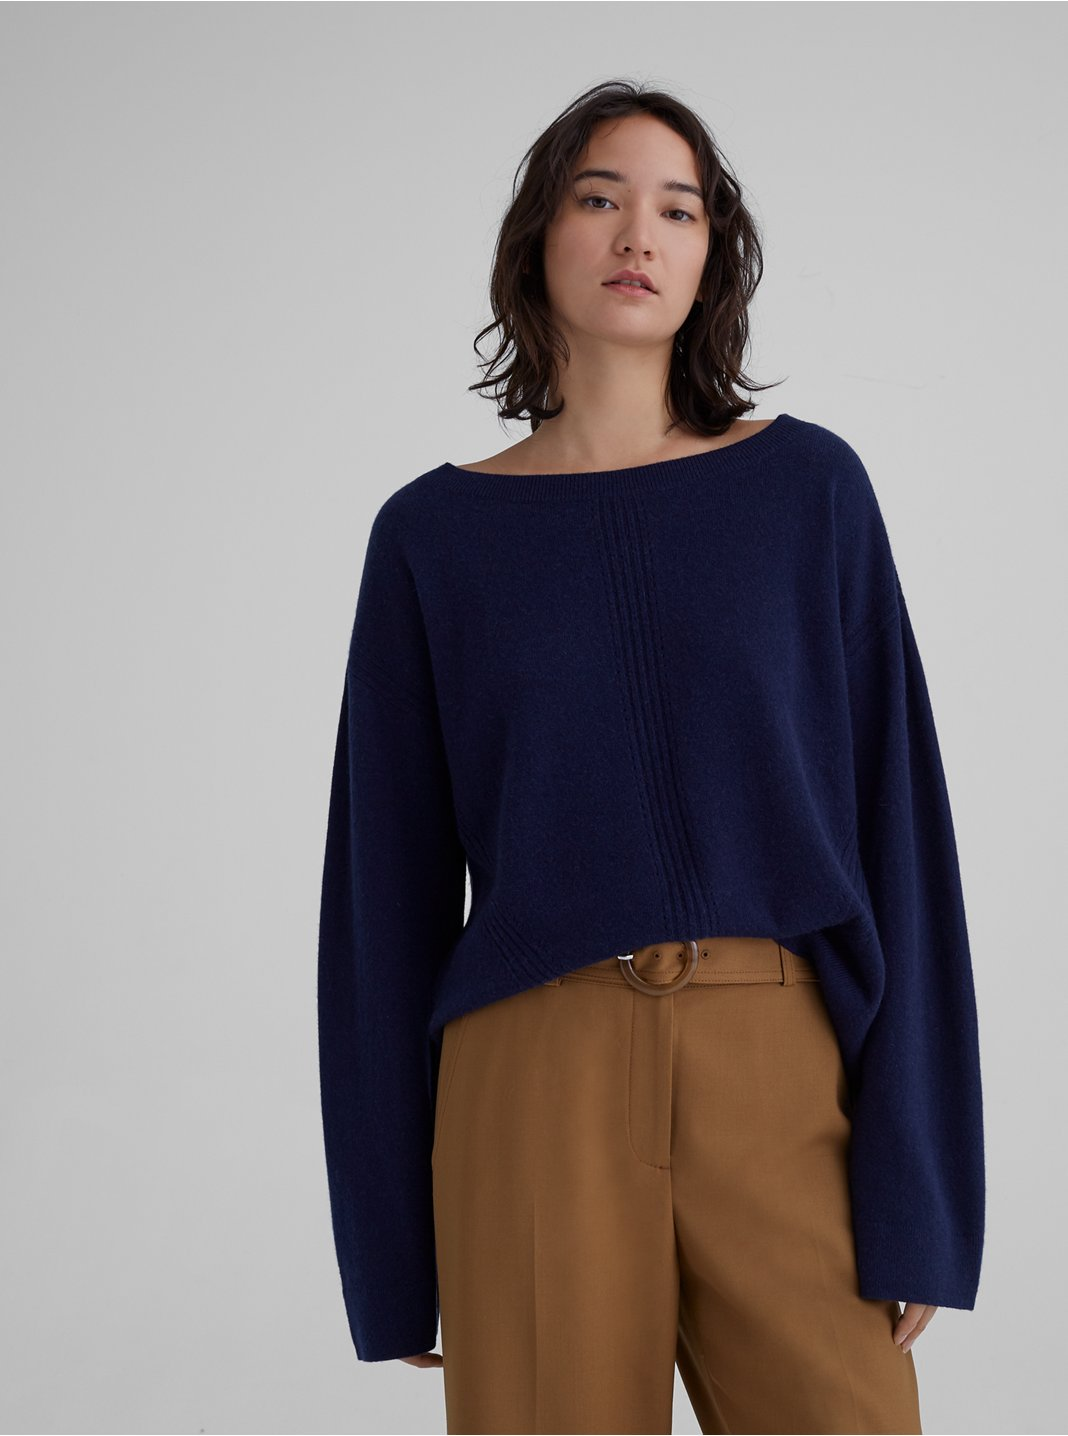 Cashmere Pointelle Knit Sweater